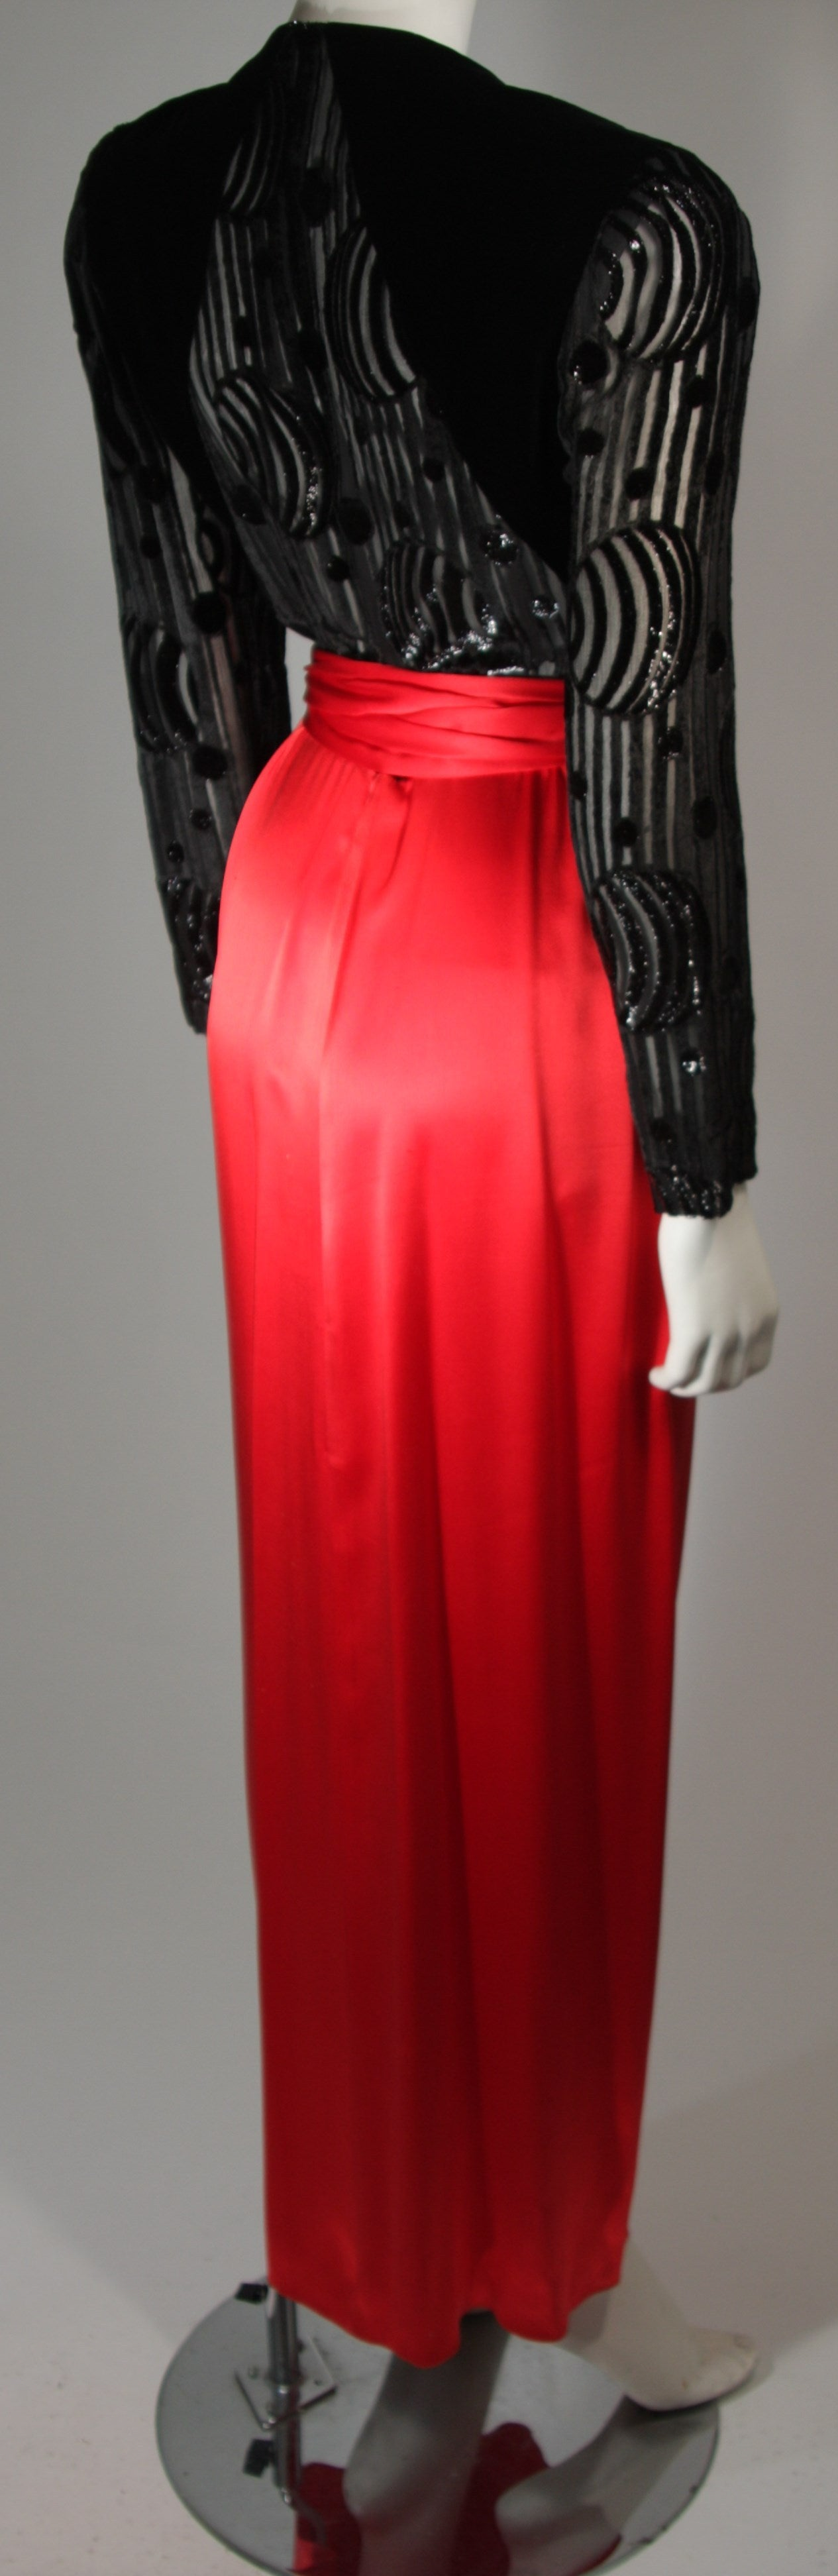 Adele Simpson Burnout Black Velvet and Red Silk Gown Size Small For Sale 2